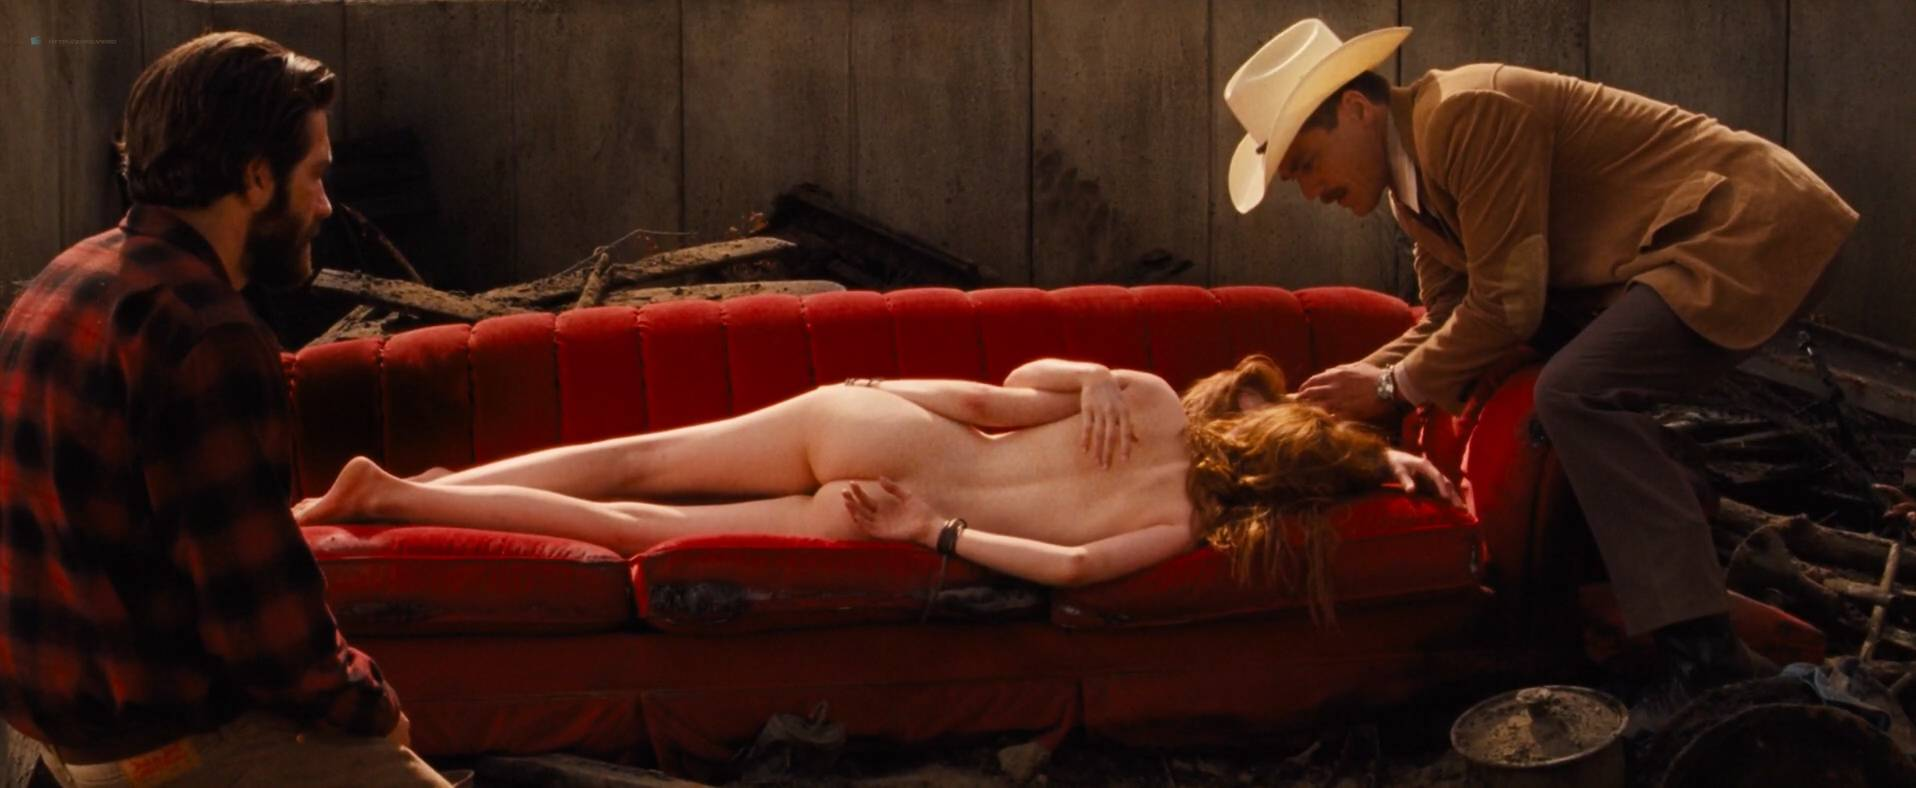 Amy adams naked video